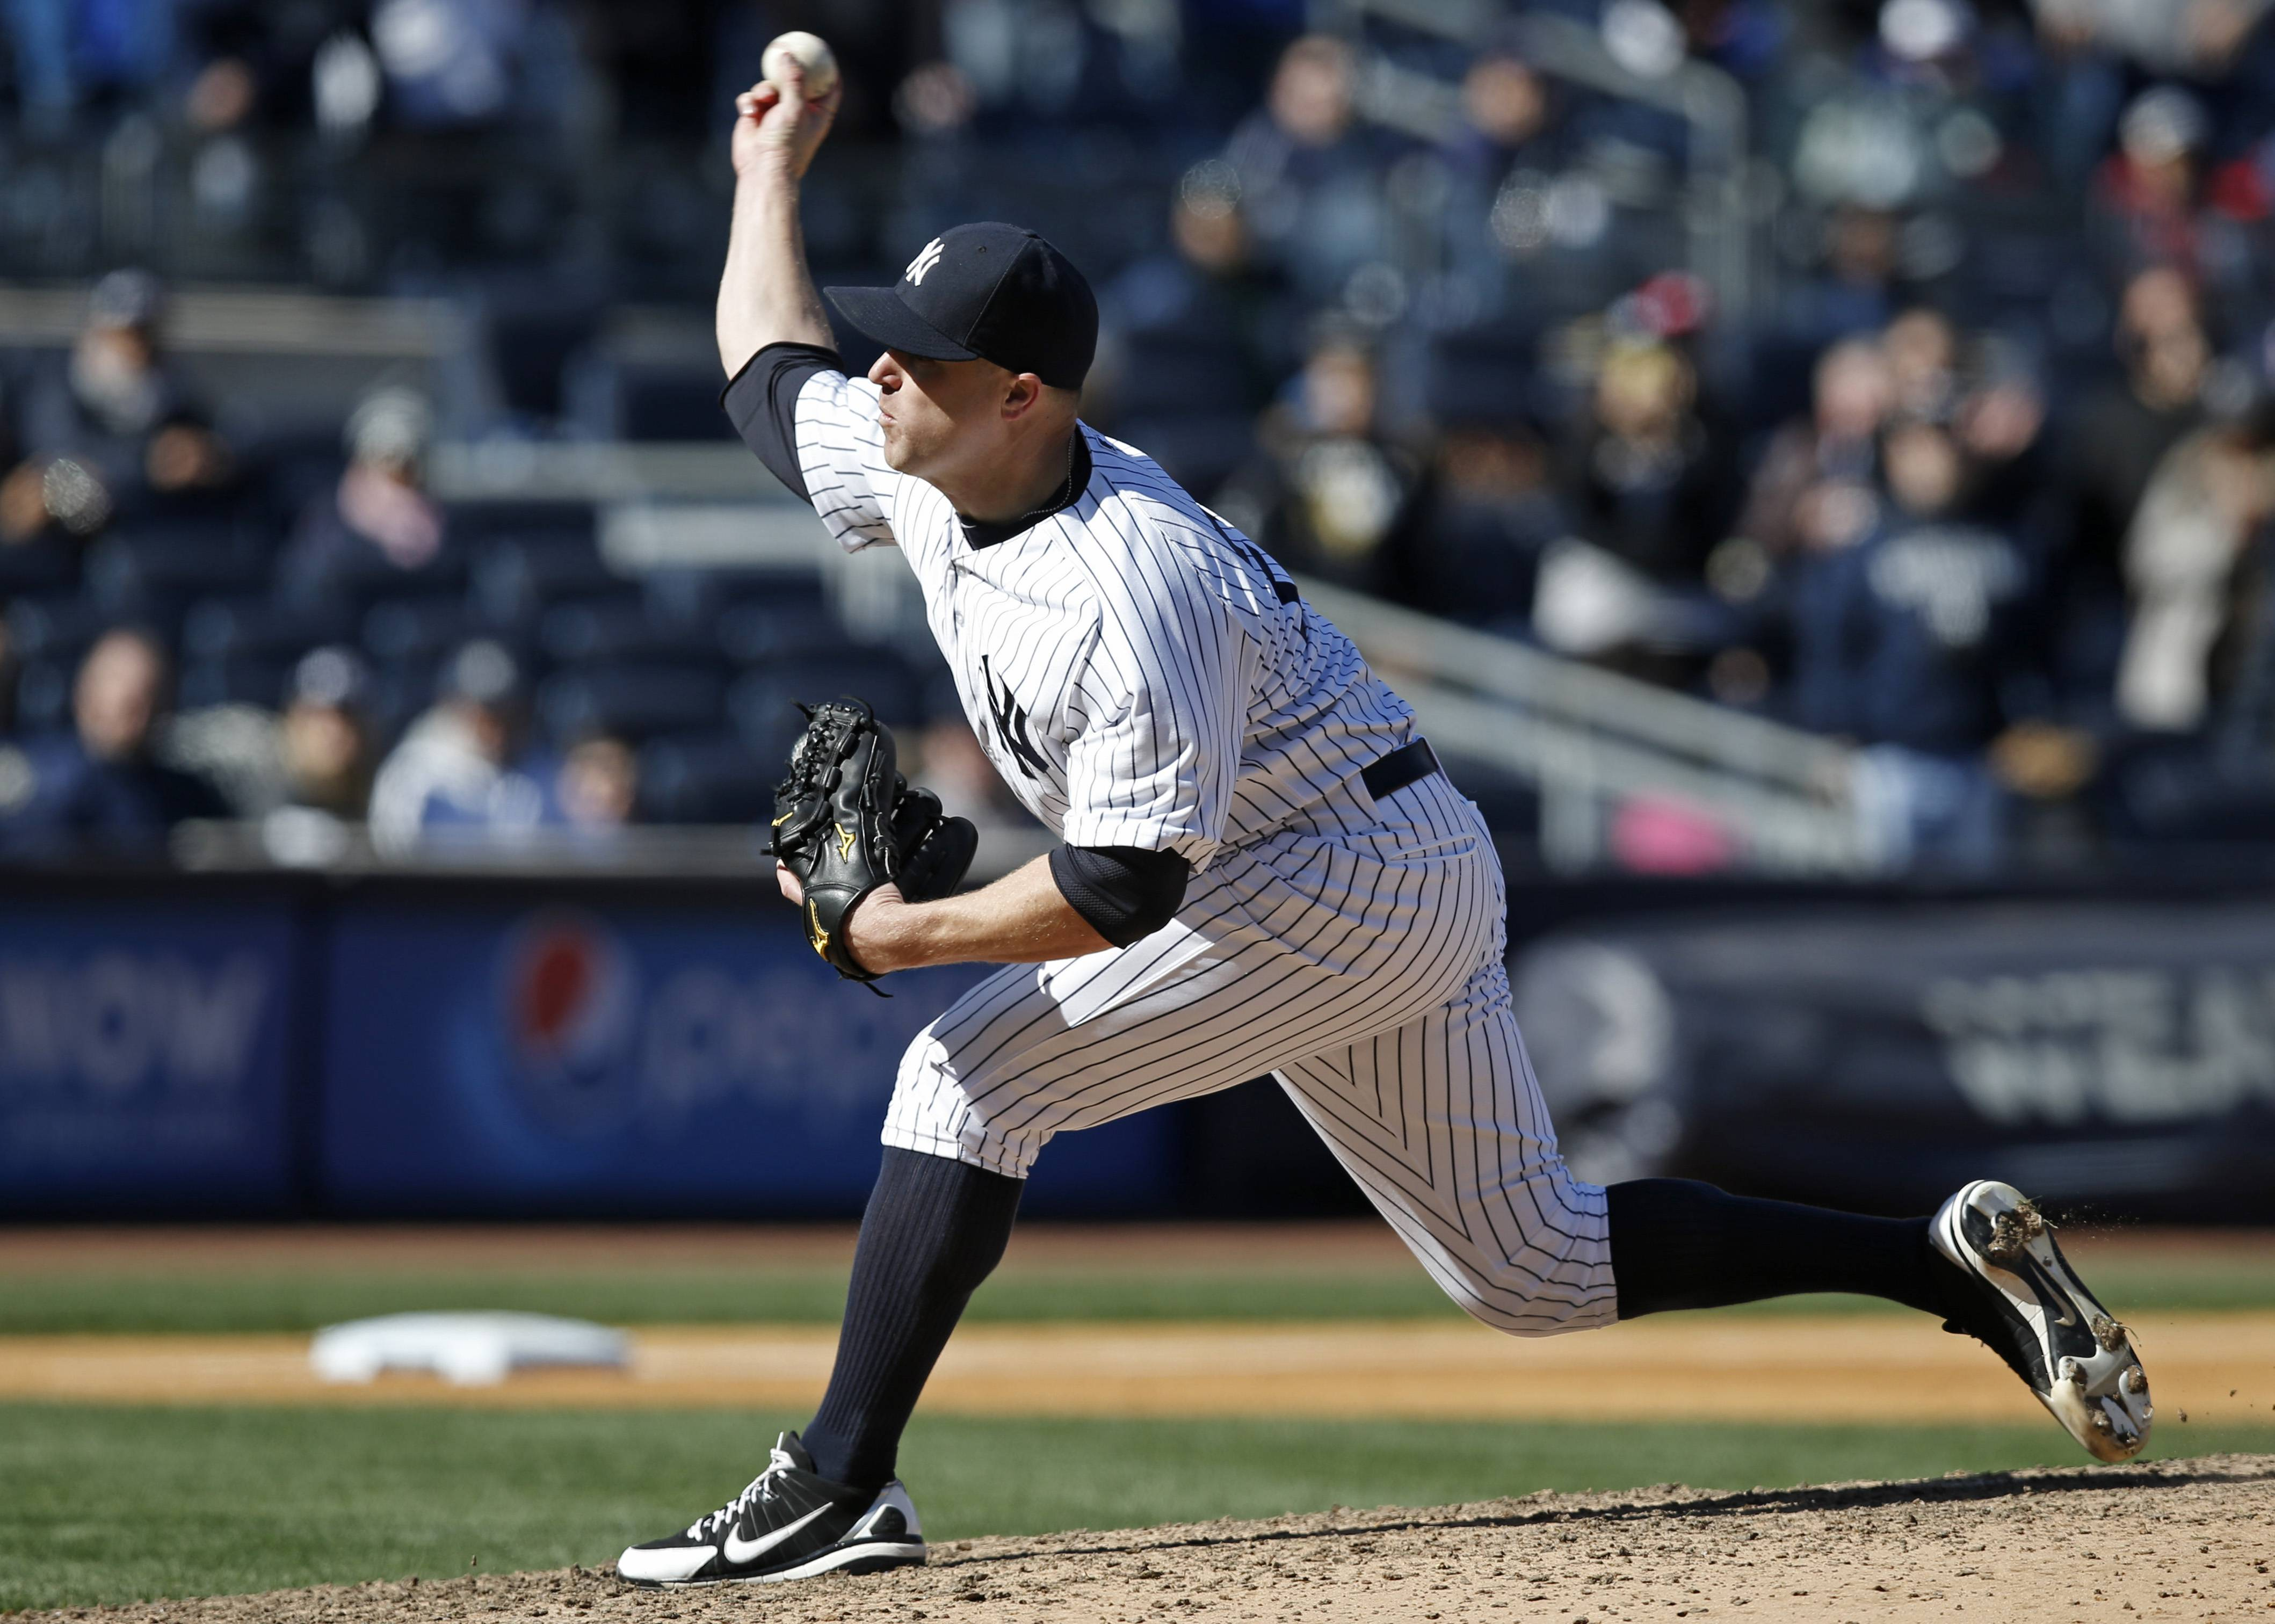 New York Yankees relief pitcher Shawn Kelley delivers in the ninth inning of the Yankees' 3-0 shutout of the Chicago Cubs in the first game of a day-night interleague baseball doubleheader at Yankee Stadium in New York, Wednesday, April 16, 2014. (AP Photo/Kathy Willens)